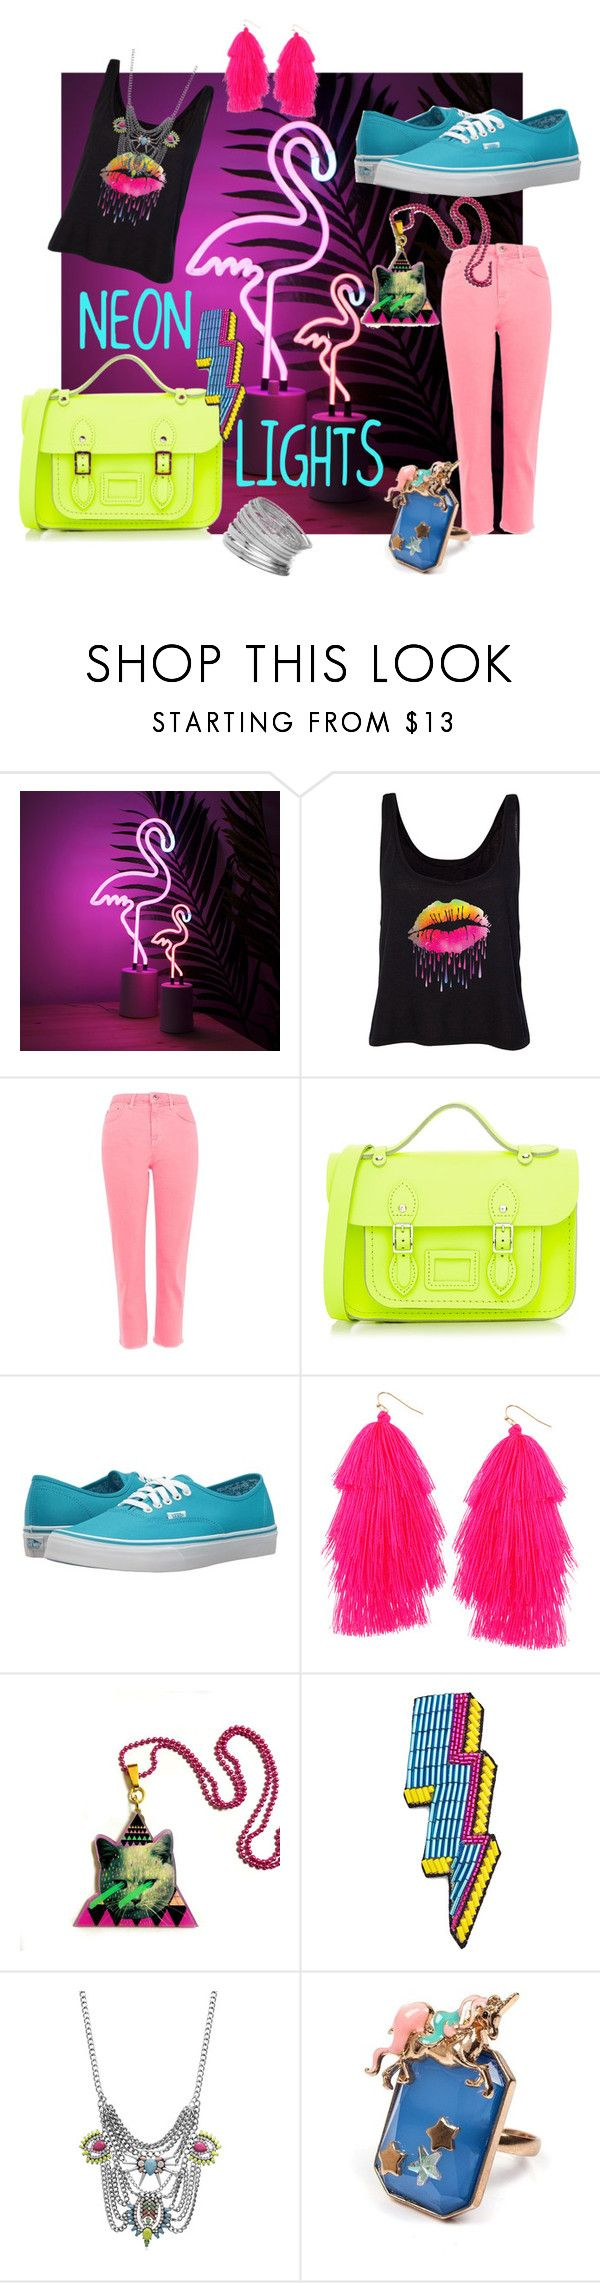 """""""Neon Lights"""" by jhmb on Polyvore featuring Topshop, The Cambridge Satchel Company, Vans, Humble Chic, Happy Embellishments, Adoriana, Irregular Choice and Miss Selfridge"""